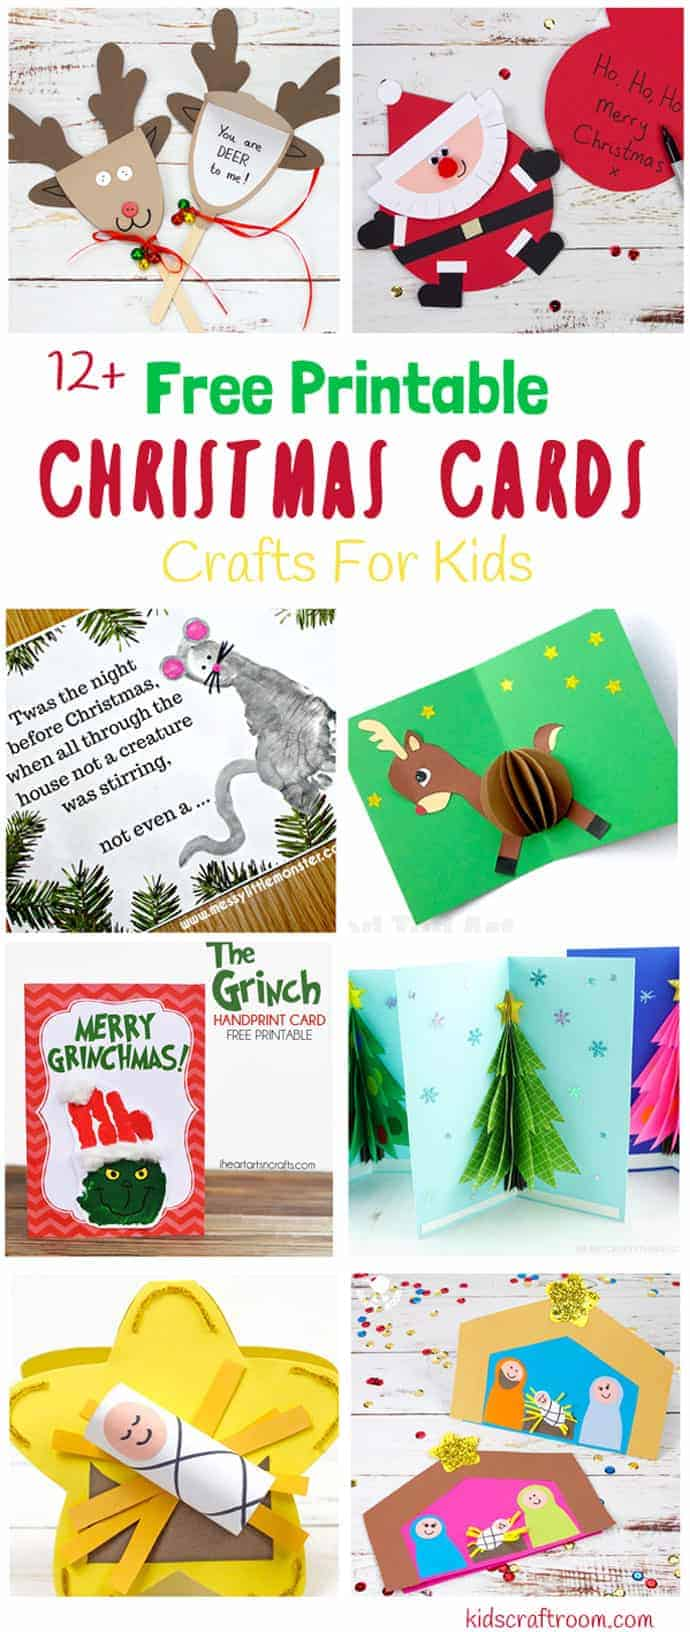 photograph about Printable Christmas Cards for Kids identify Printable Xmas Playing cards For Children - Small children Craft Space